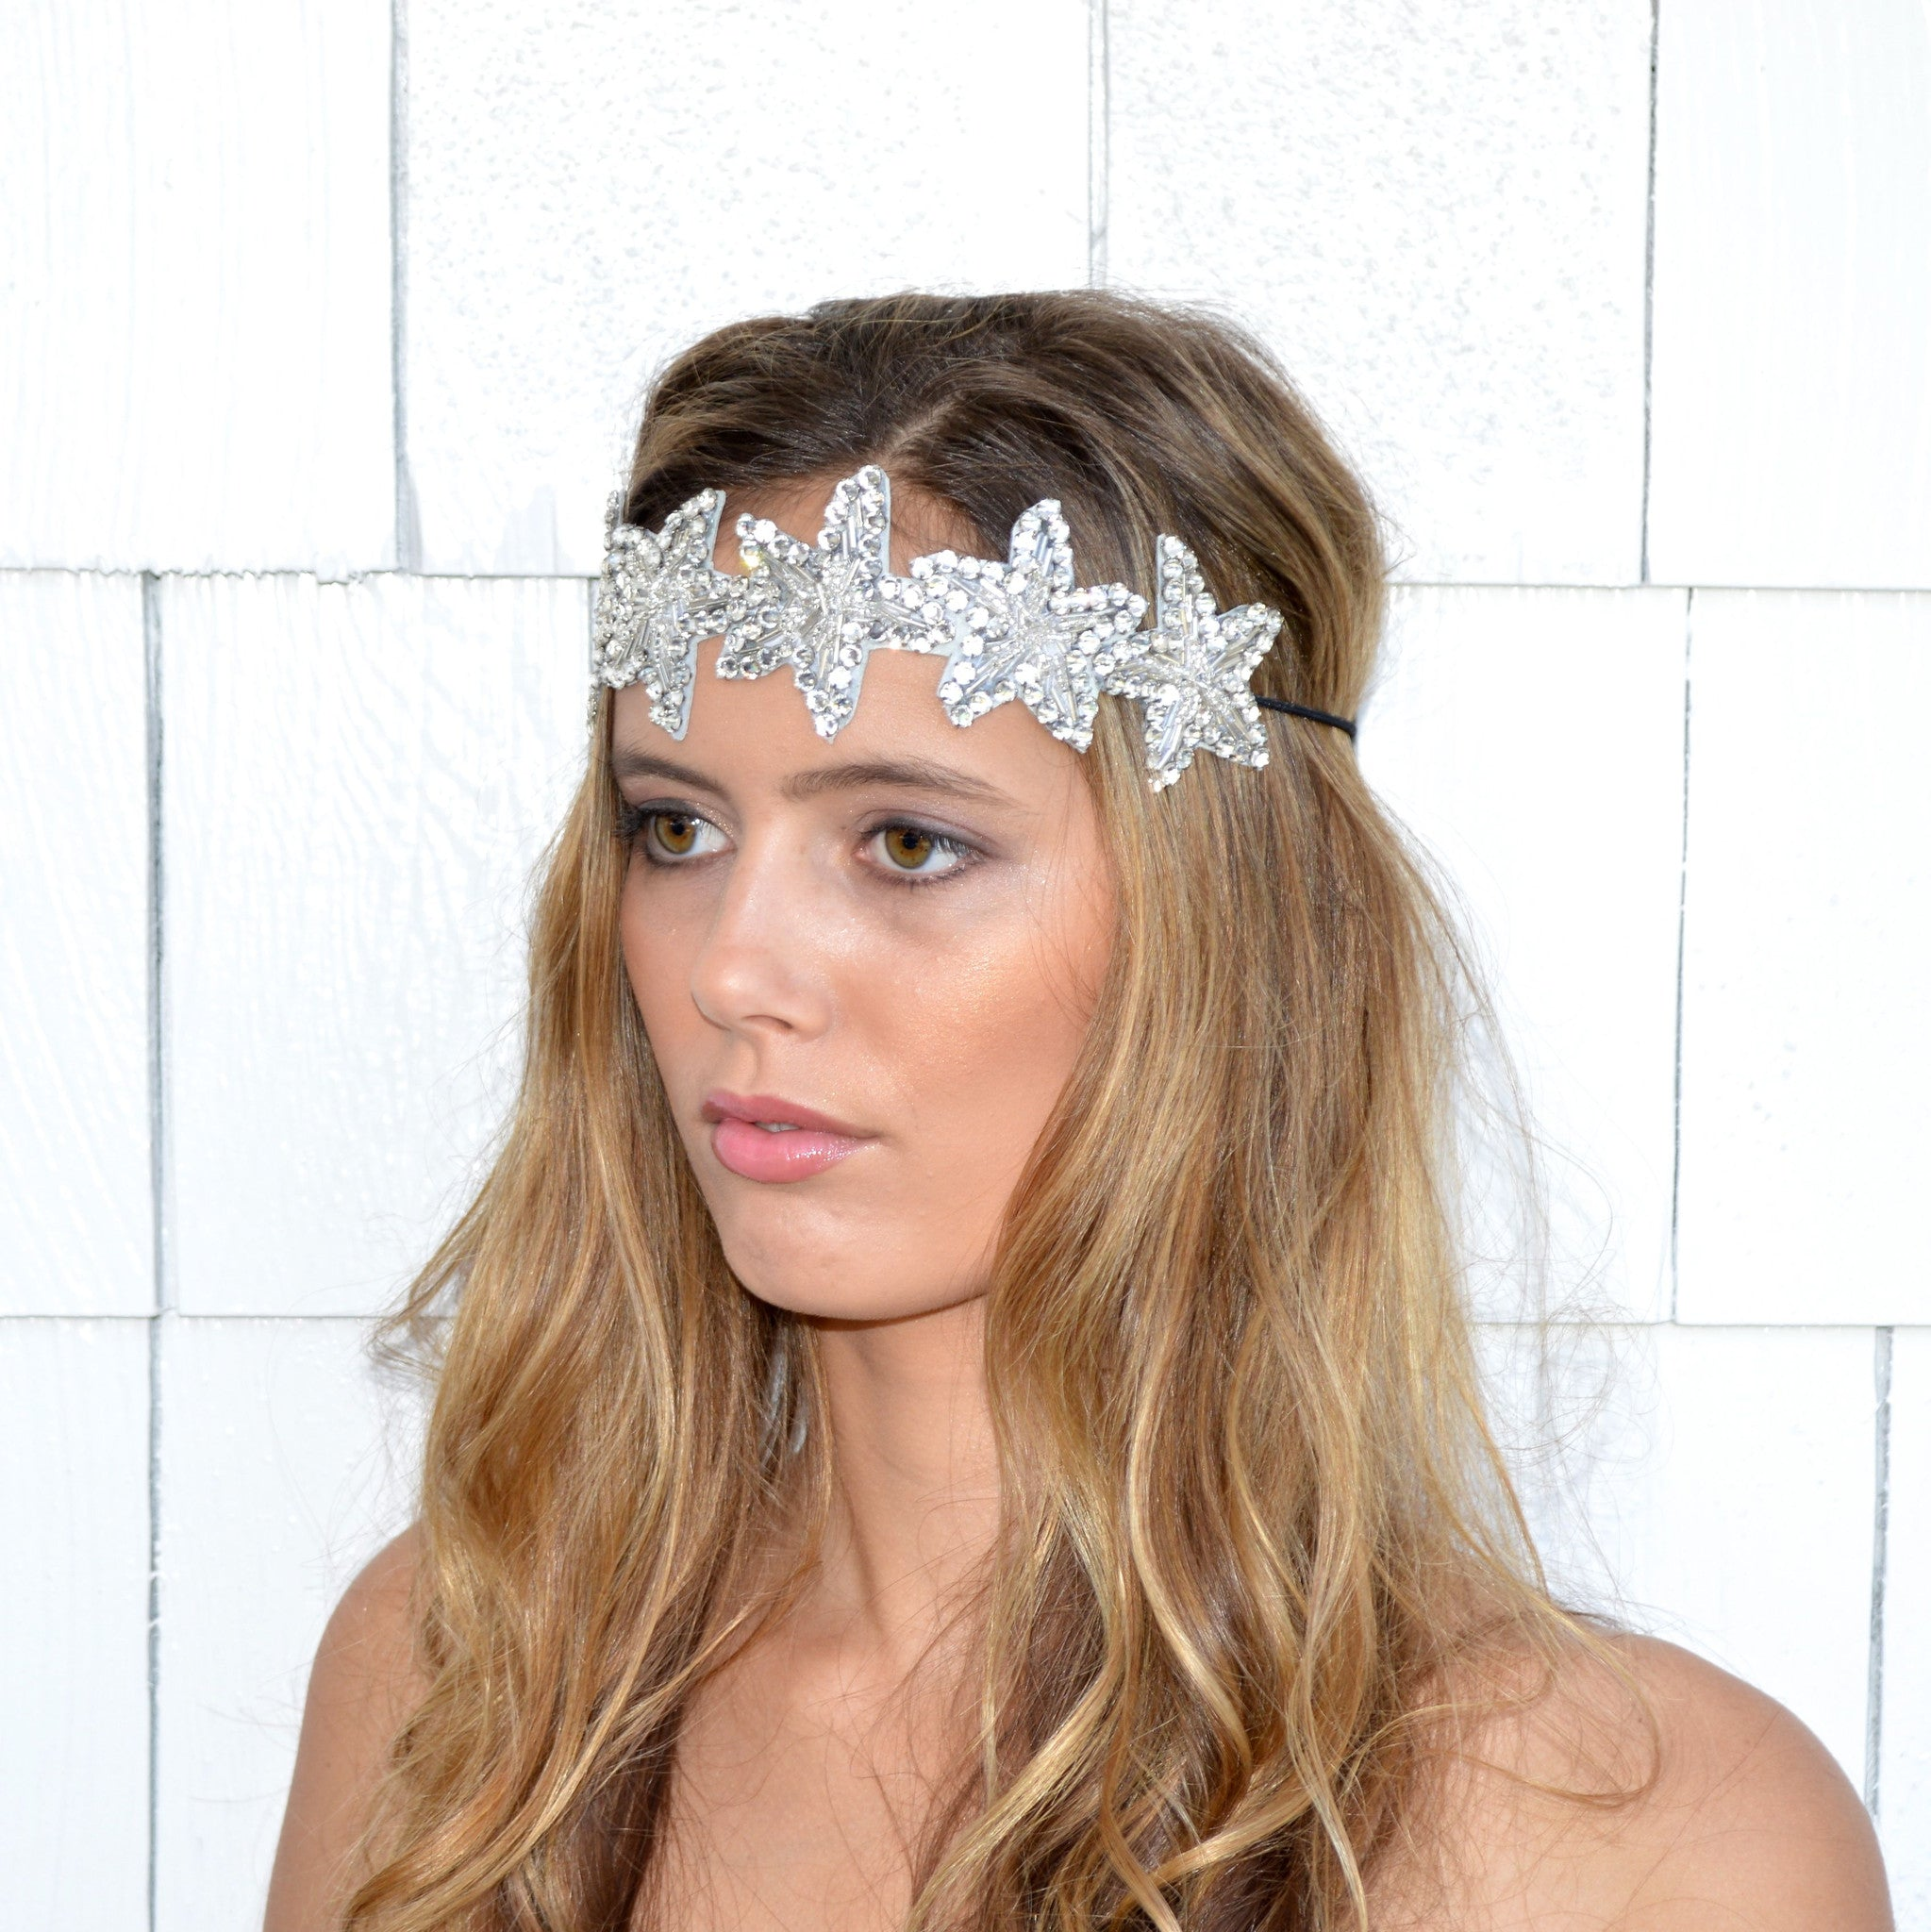 The Twinkle Twinkle Headpiece